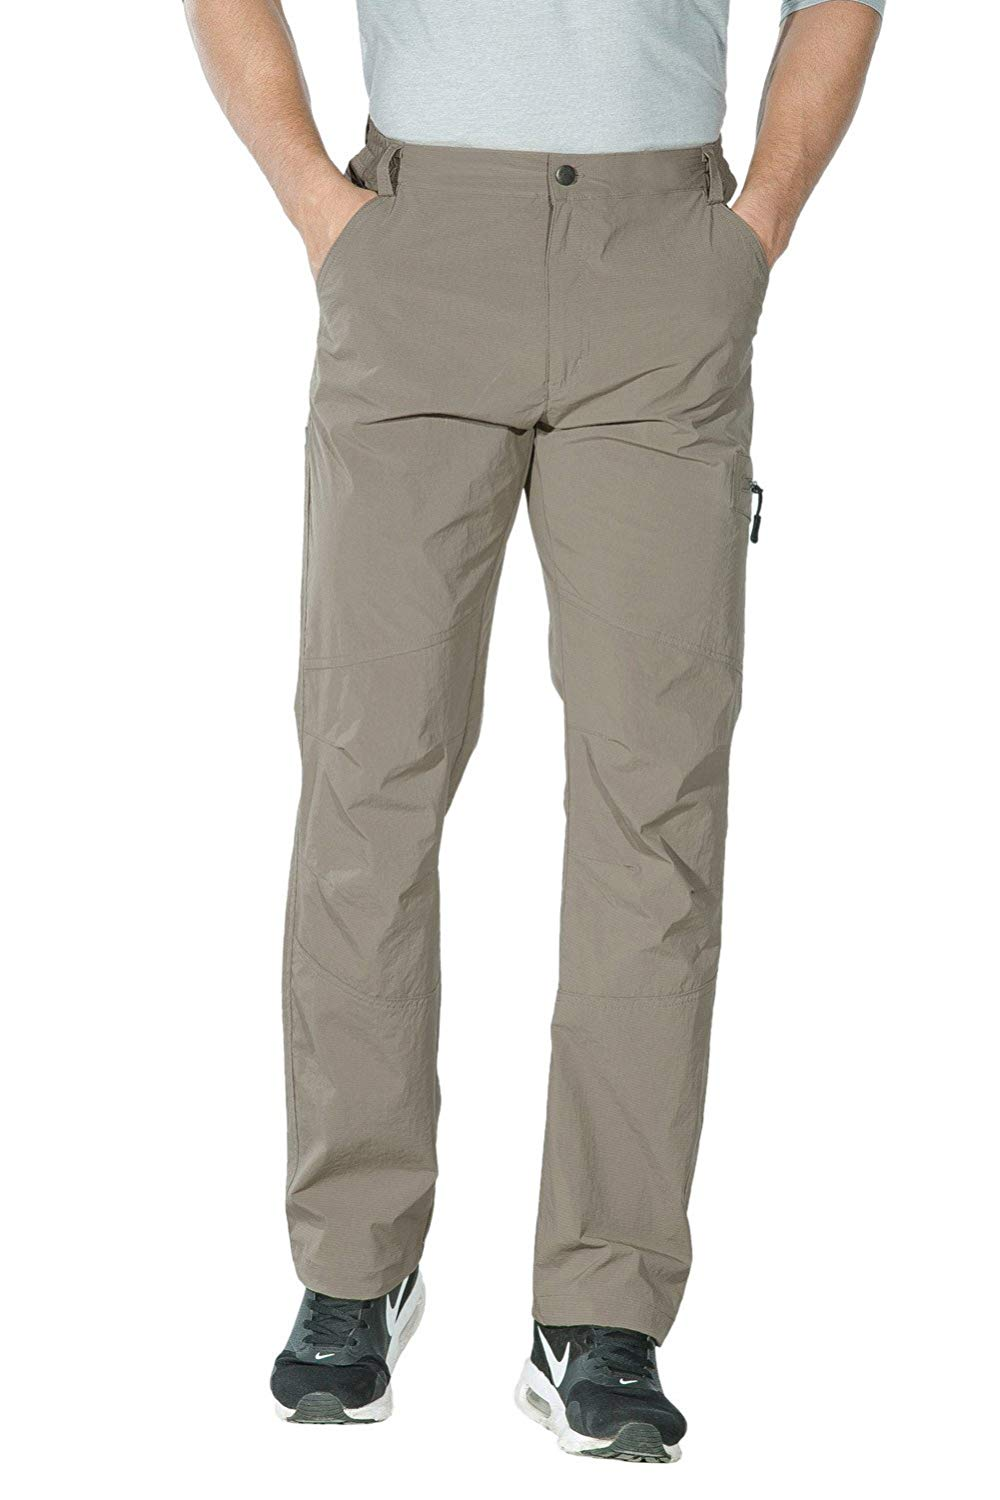 Unitop Men's Lightweight Hiking Cargo Pants front